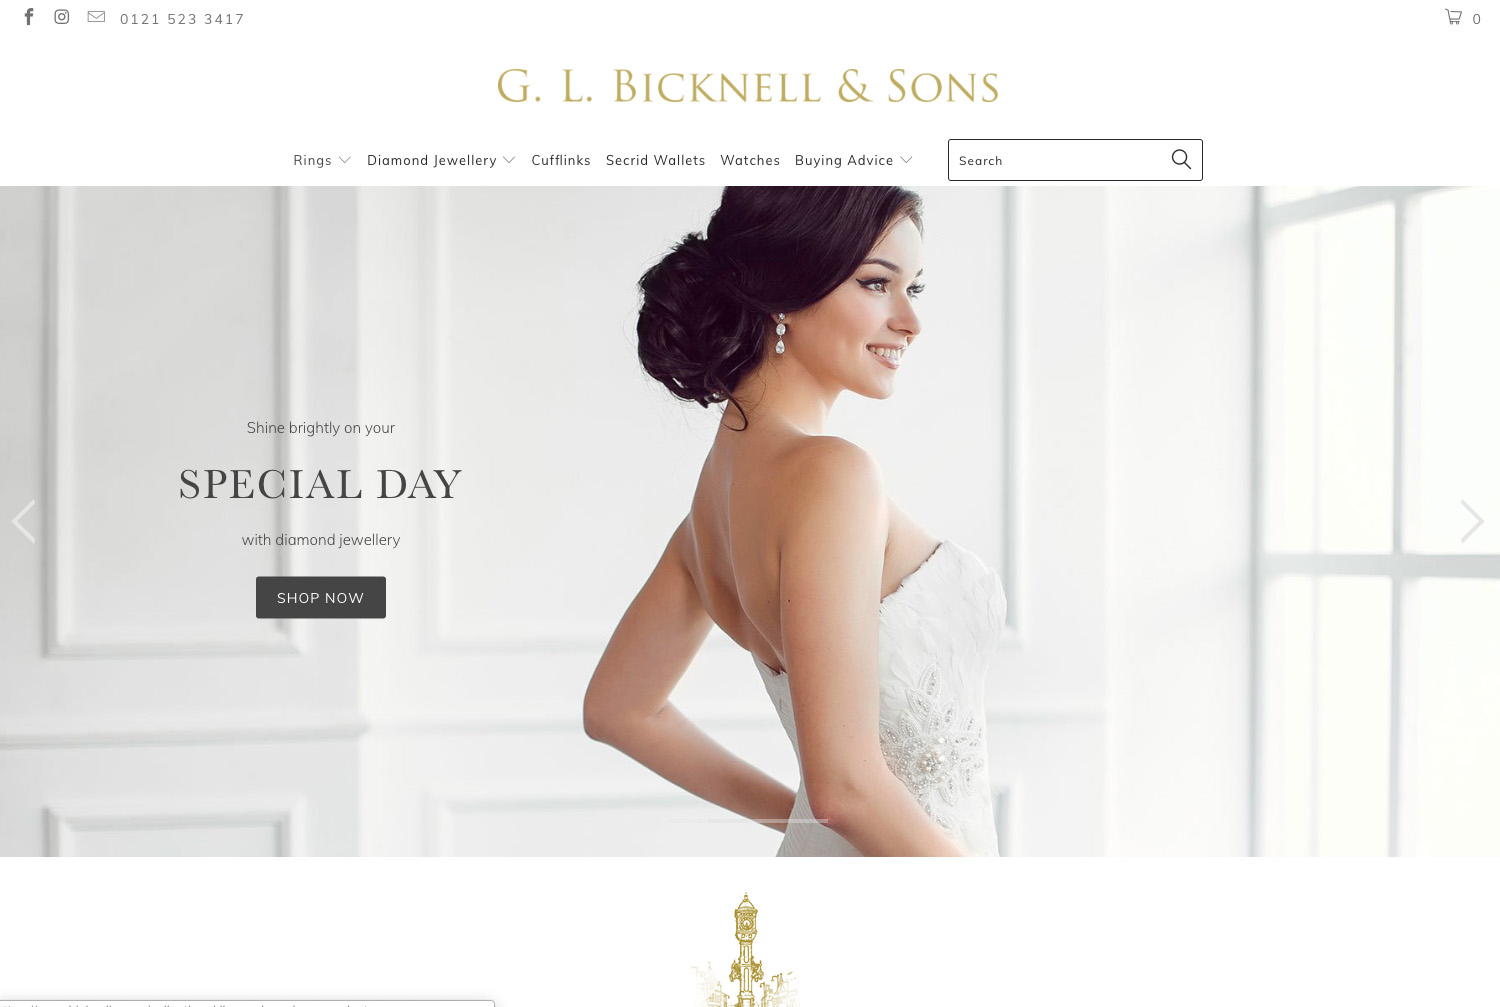 Bicknells Jewellery - Beautiful hand made engagement and wedding rings to order in the heart of Birmingham's jewellery quarter. Bicknells Jewellers offer a traditional buying experience for couples looking to get engaged and married.